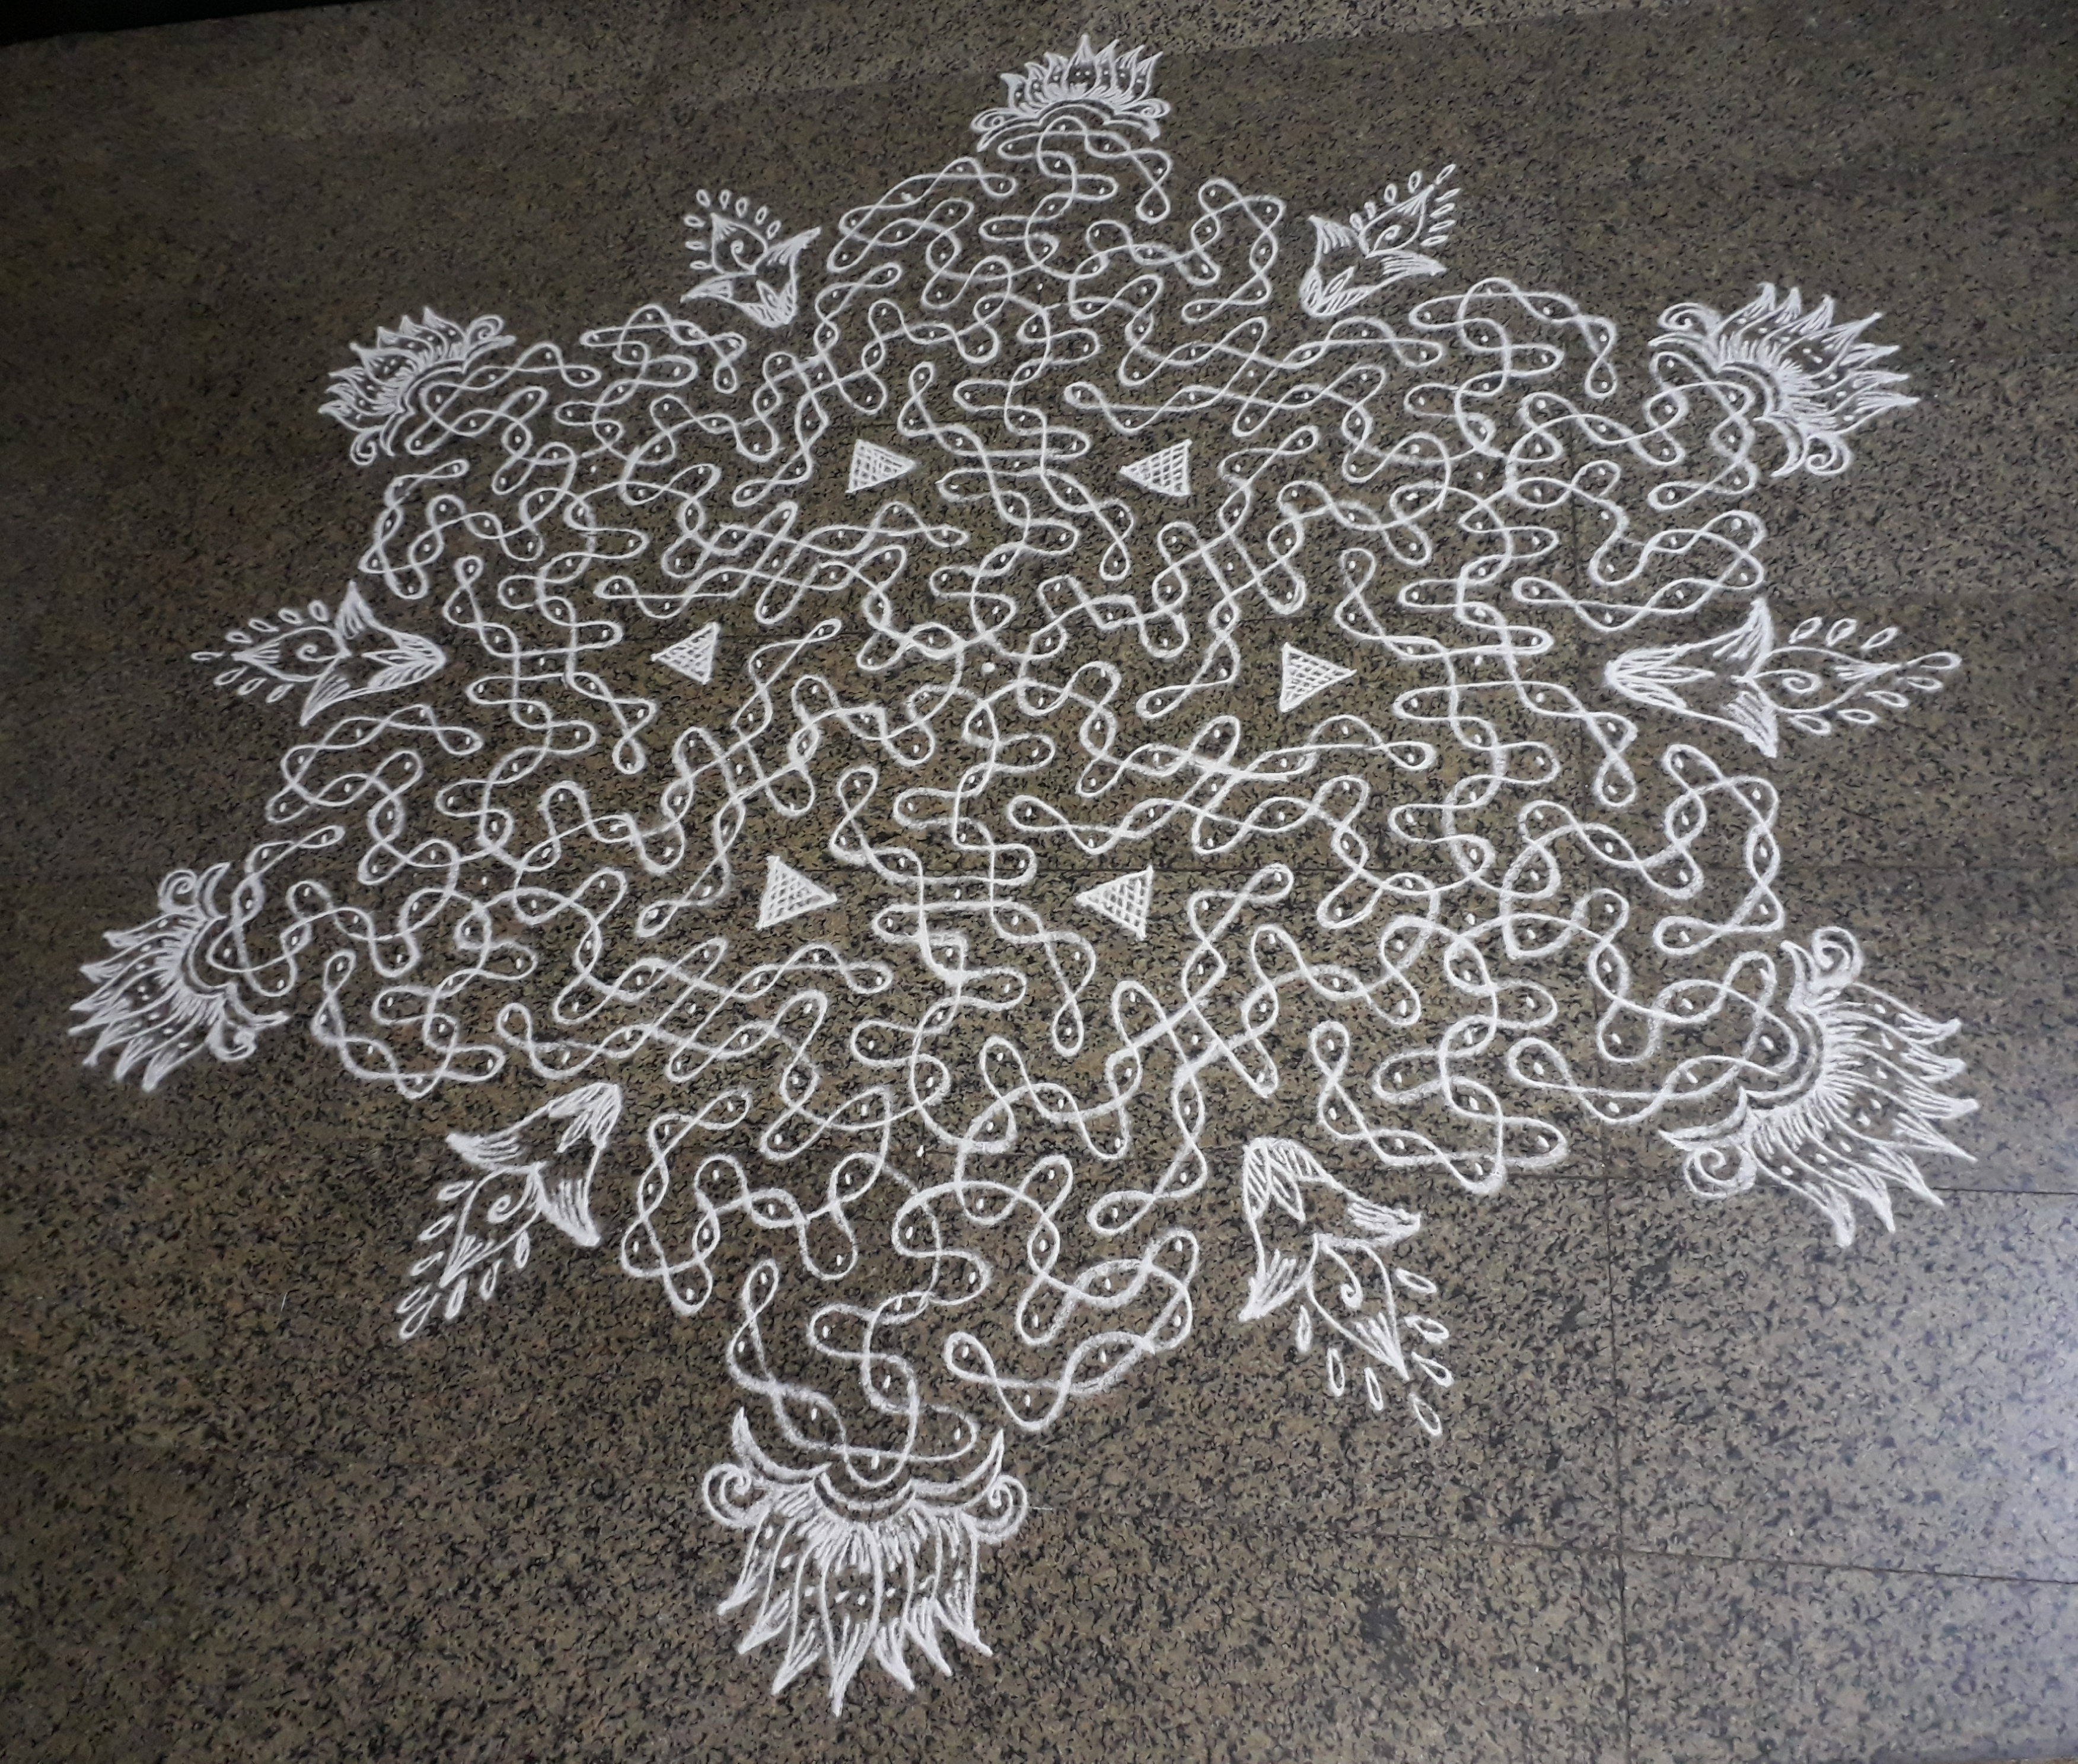 25 13 Dots Chikku Kolam Contest Kolams Of India